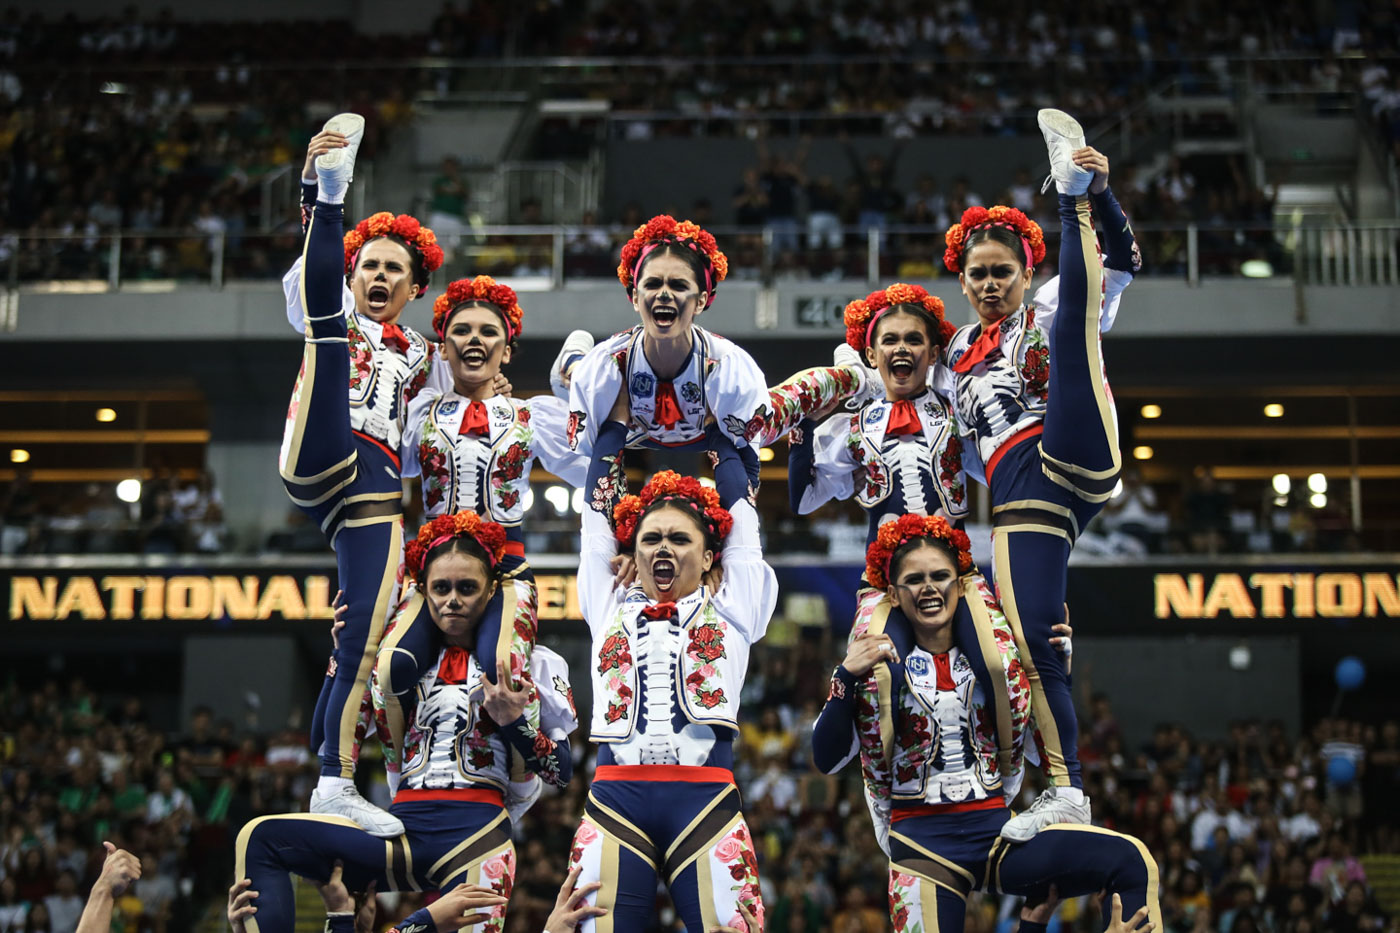 NU Pep Squad reclaims UAAP cheerdance crown